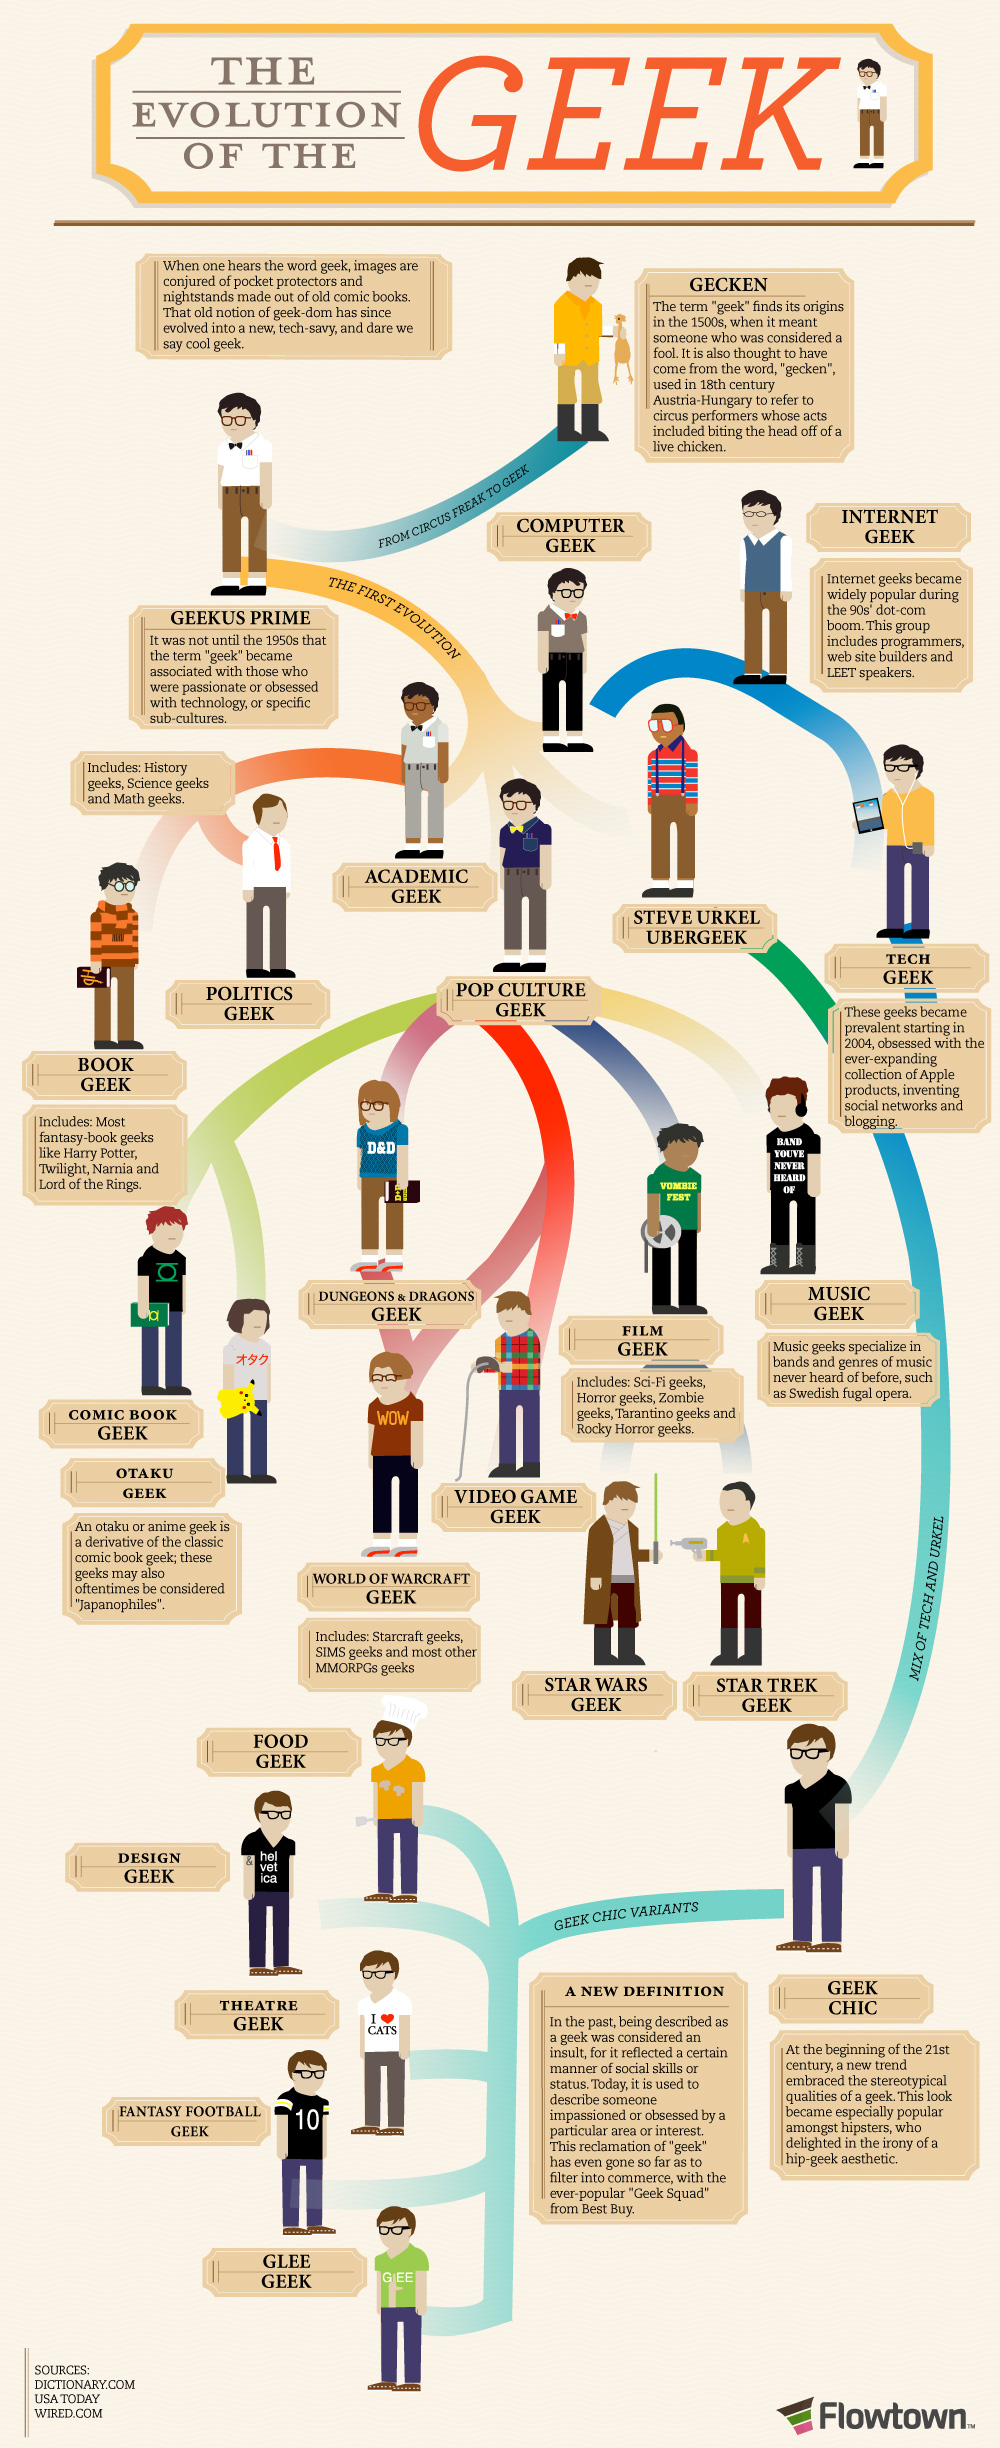 The evolution of the Geek